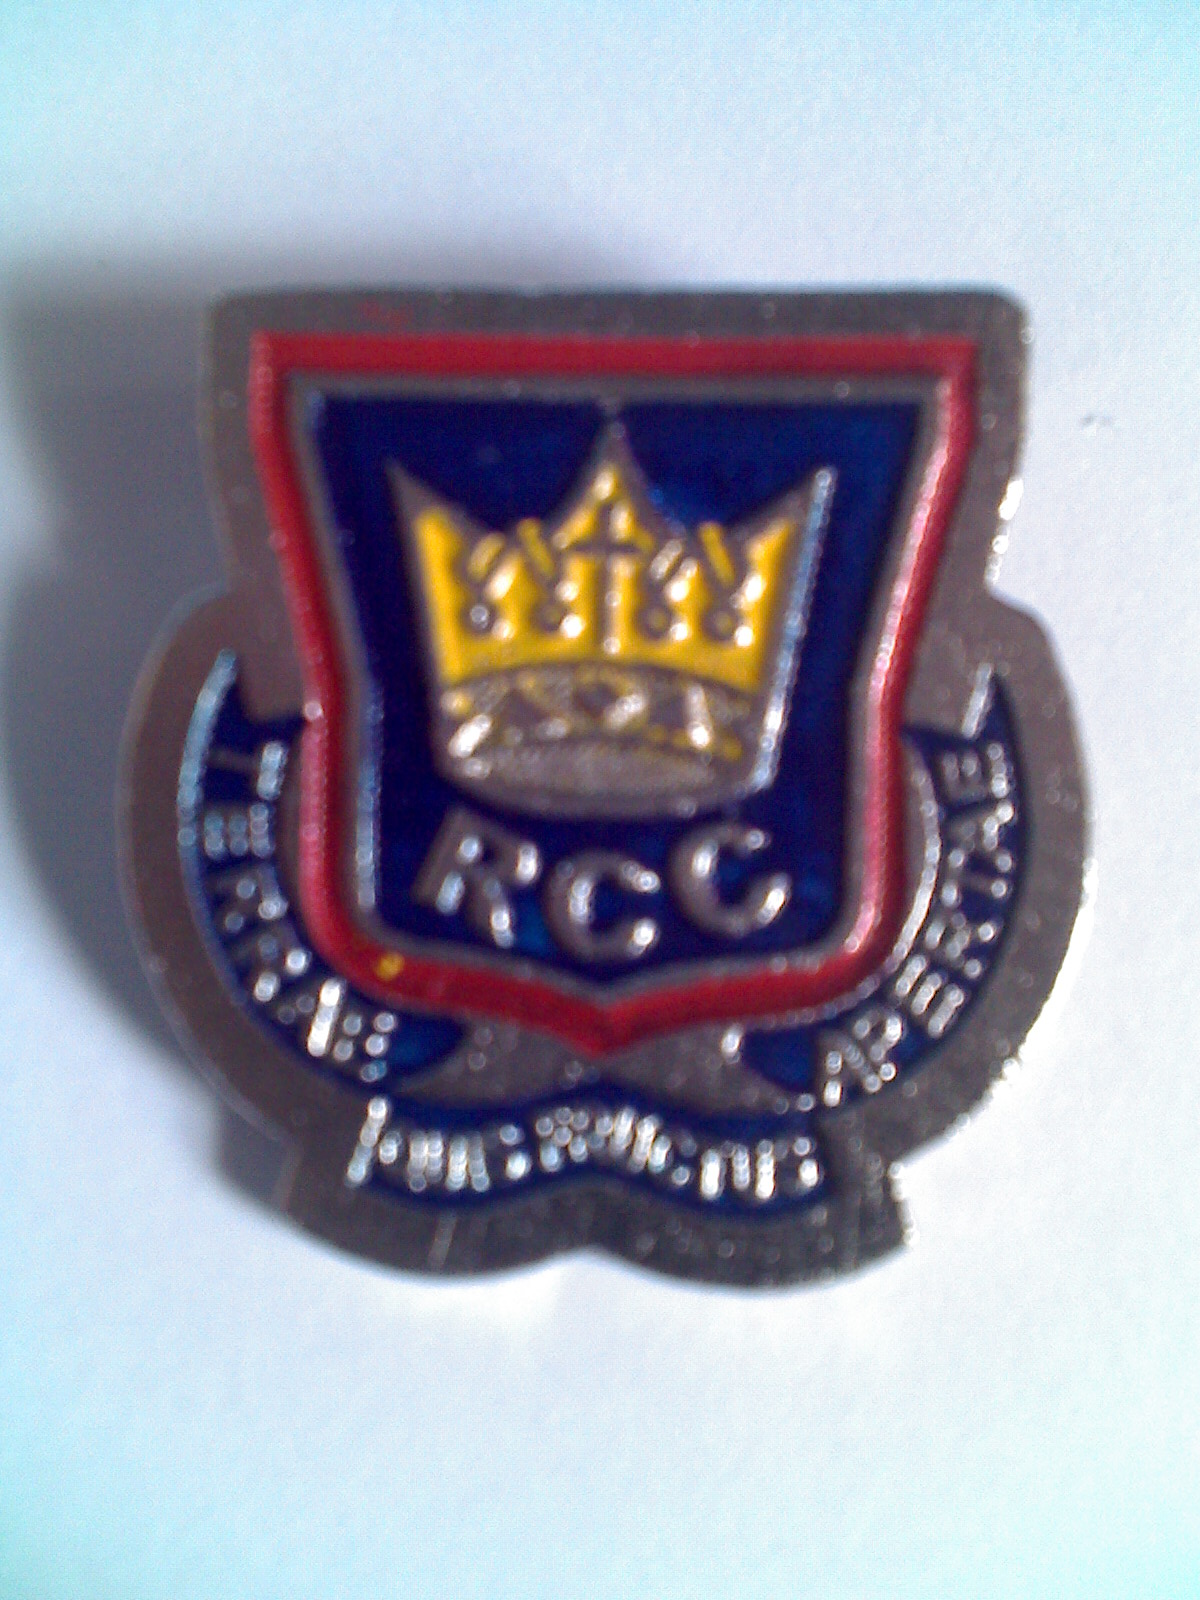 File:RCC BADGE.jpg - Wikipedia